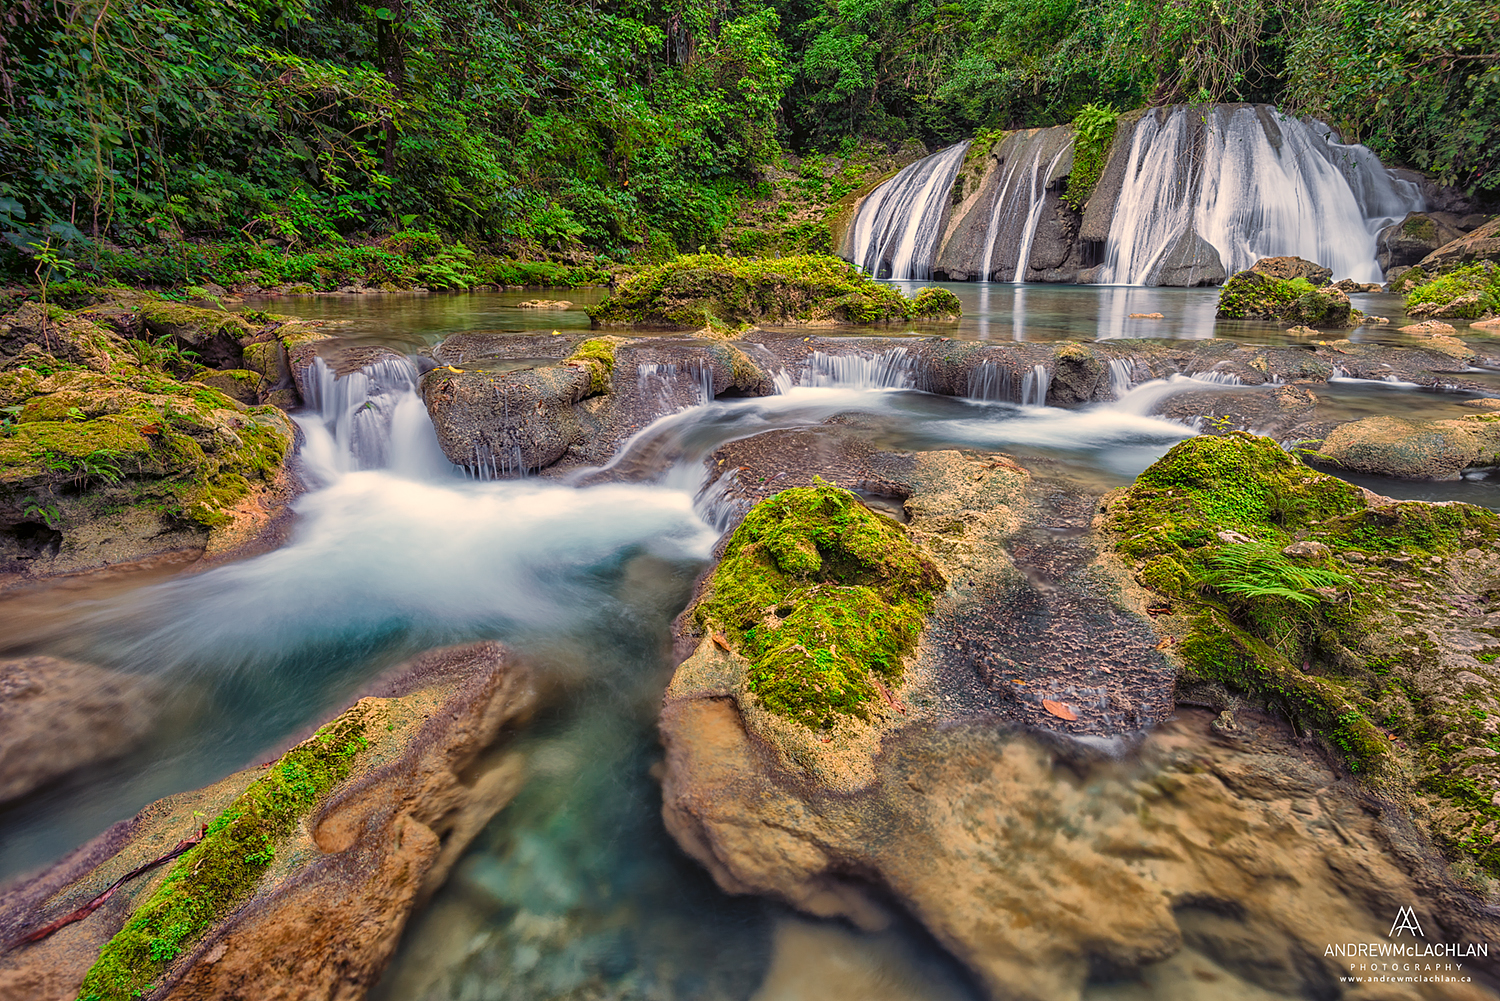 Reich Falls on the Drivers River in the John Crow Mountains, Jamaica